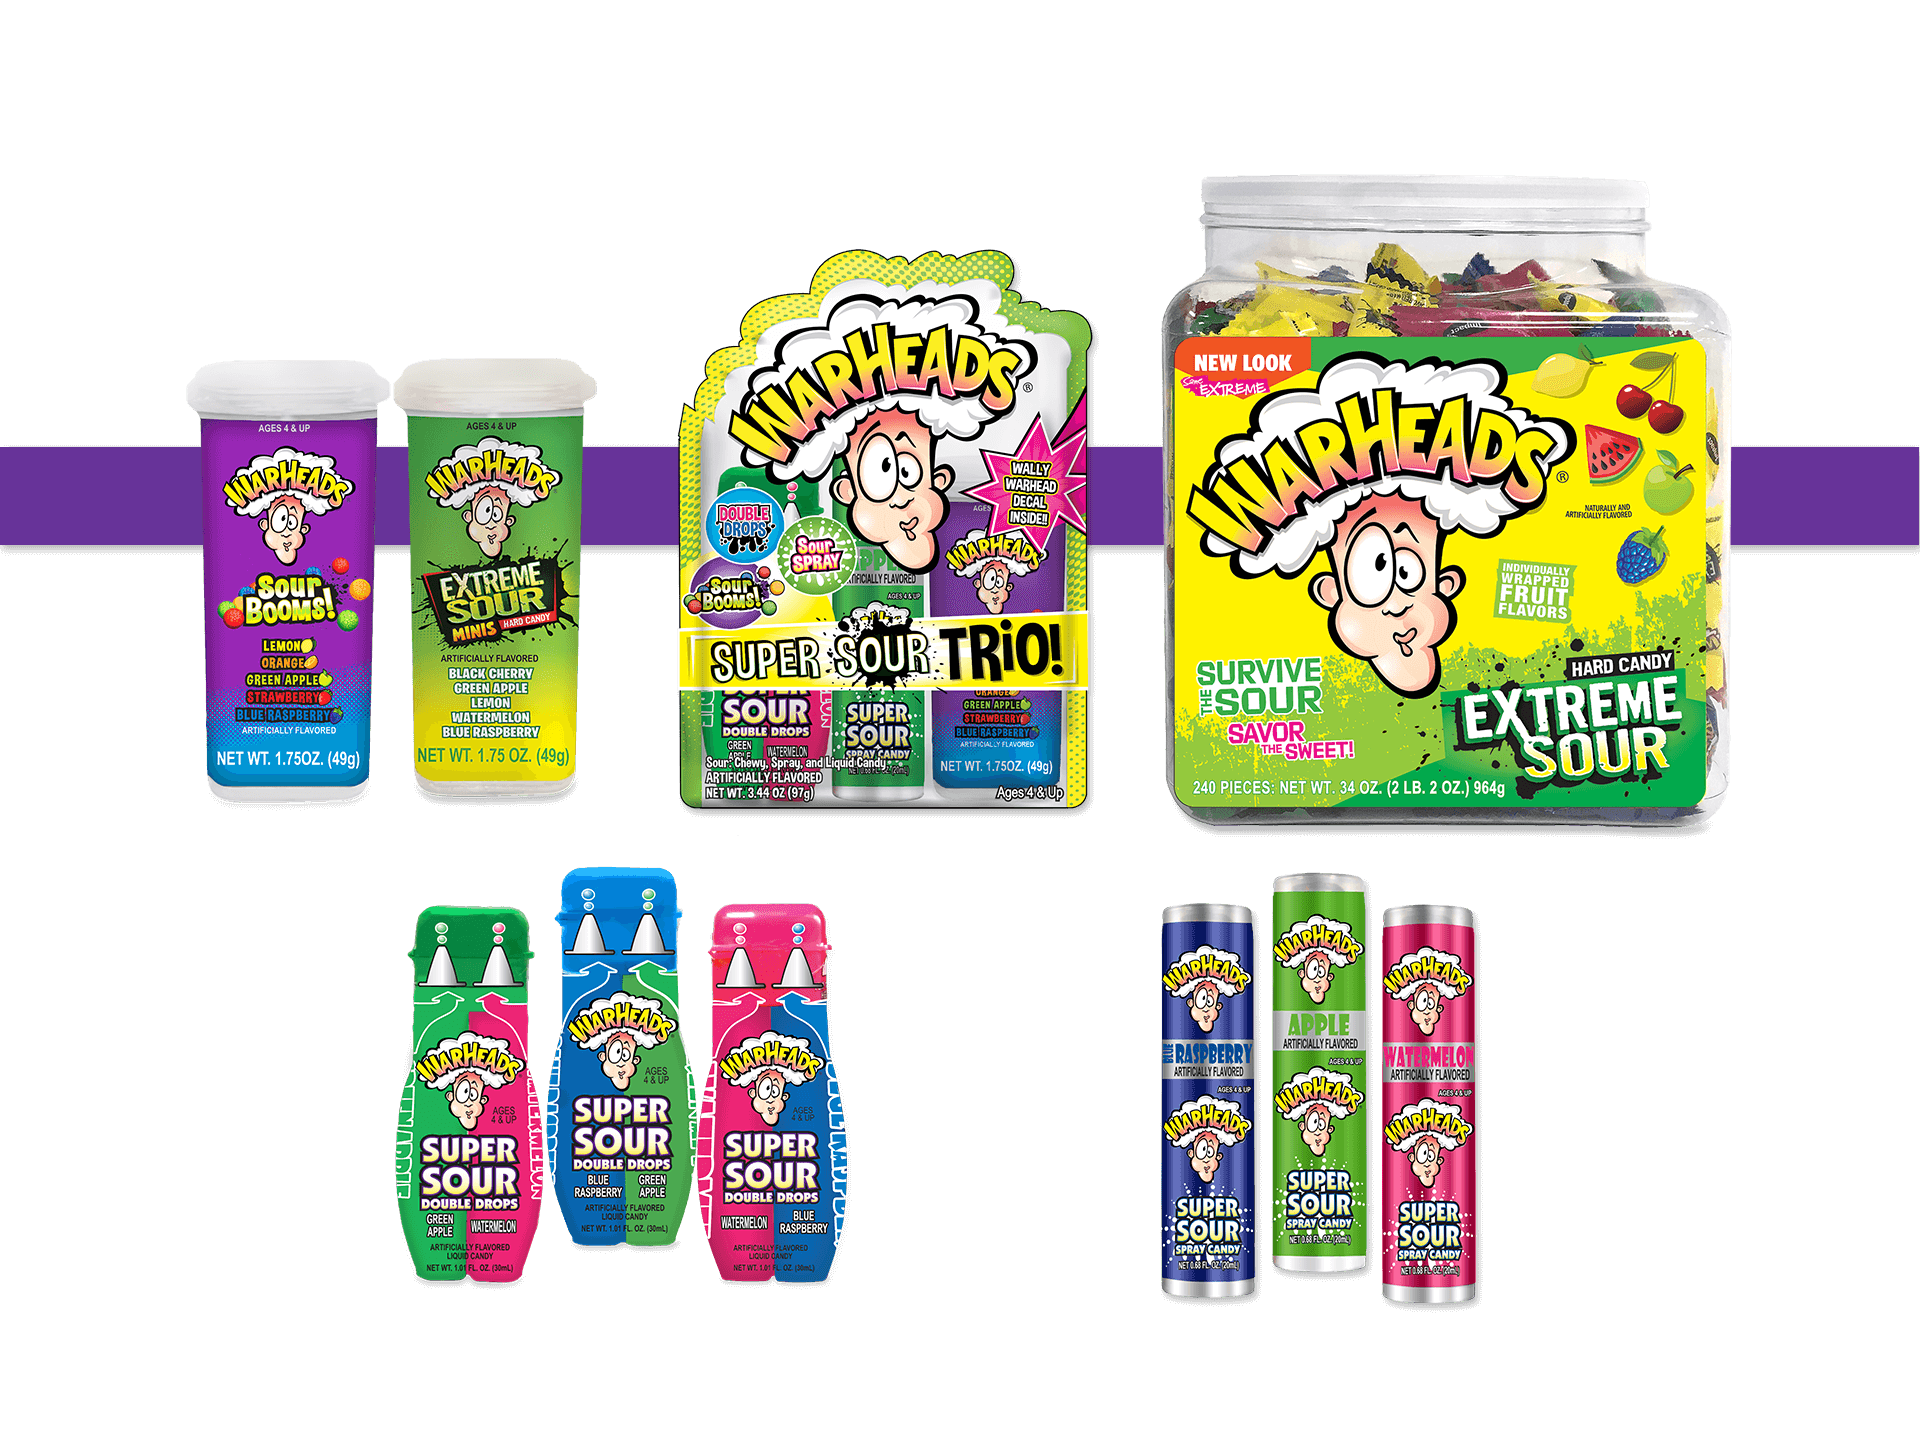 WARHEADS Novelties Assortment